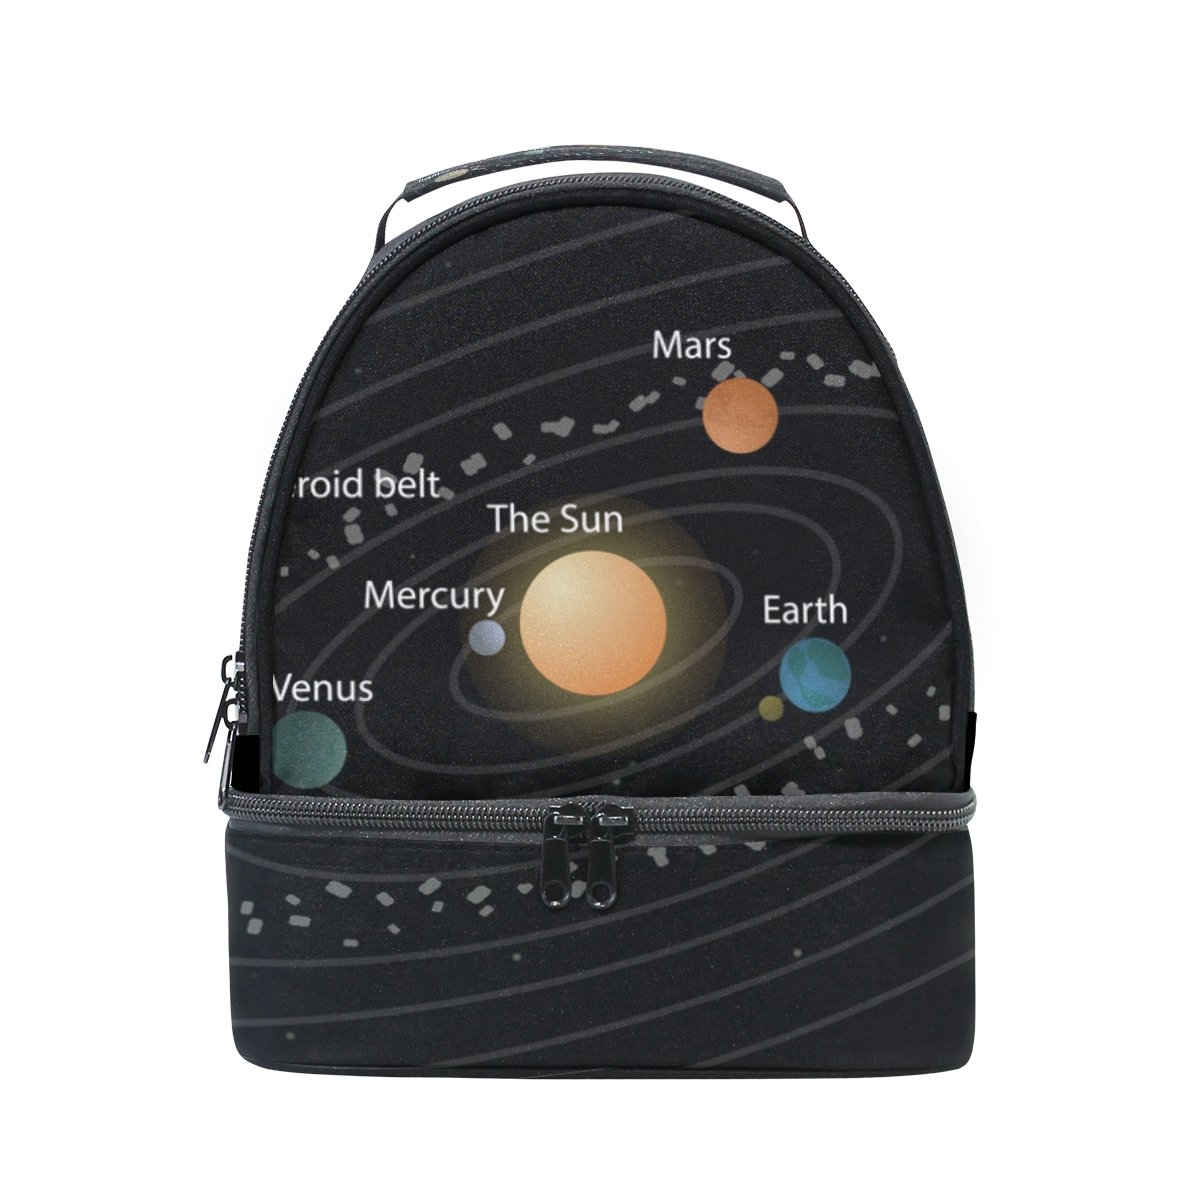 LORVIES Educational Solar System Lunch Bag Dual Deck Insulated Lunch Cooler Tote Bag Adjustable Strap Handle for Women Men Teens Boys Girls